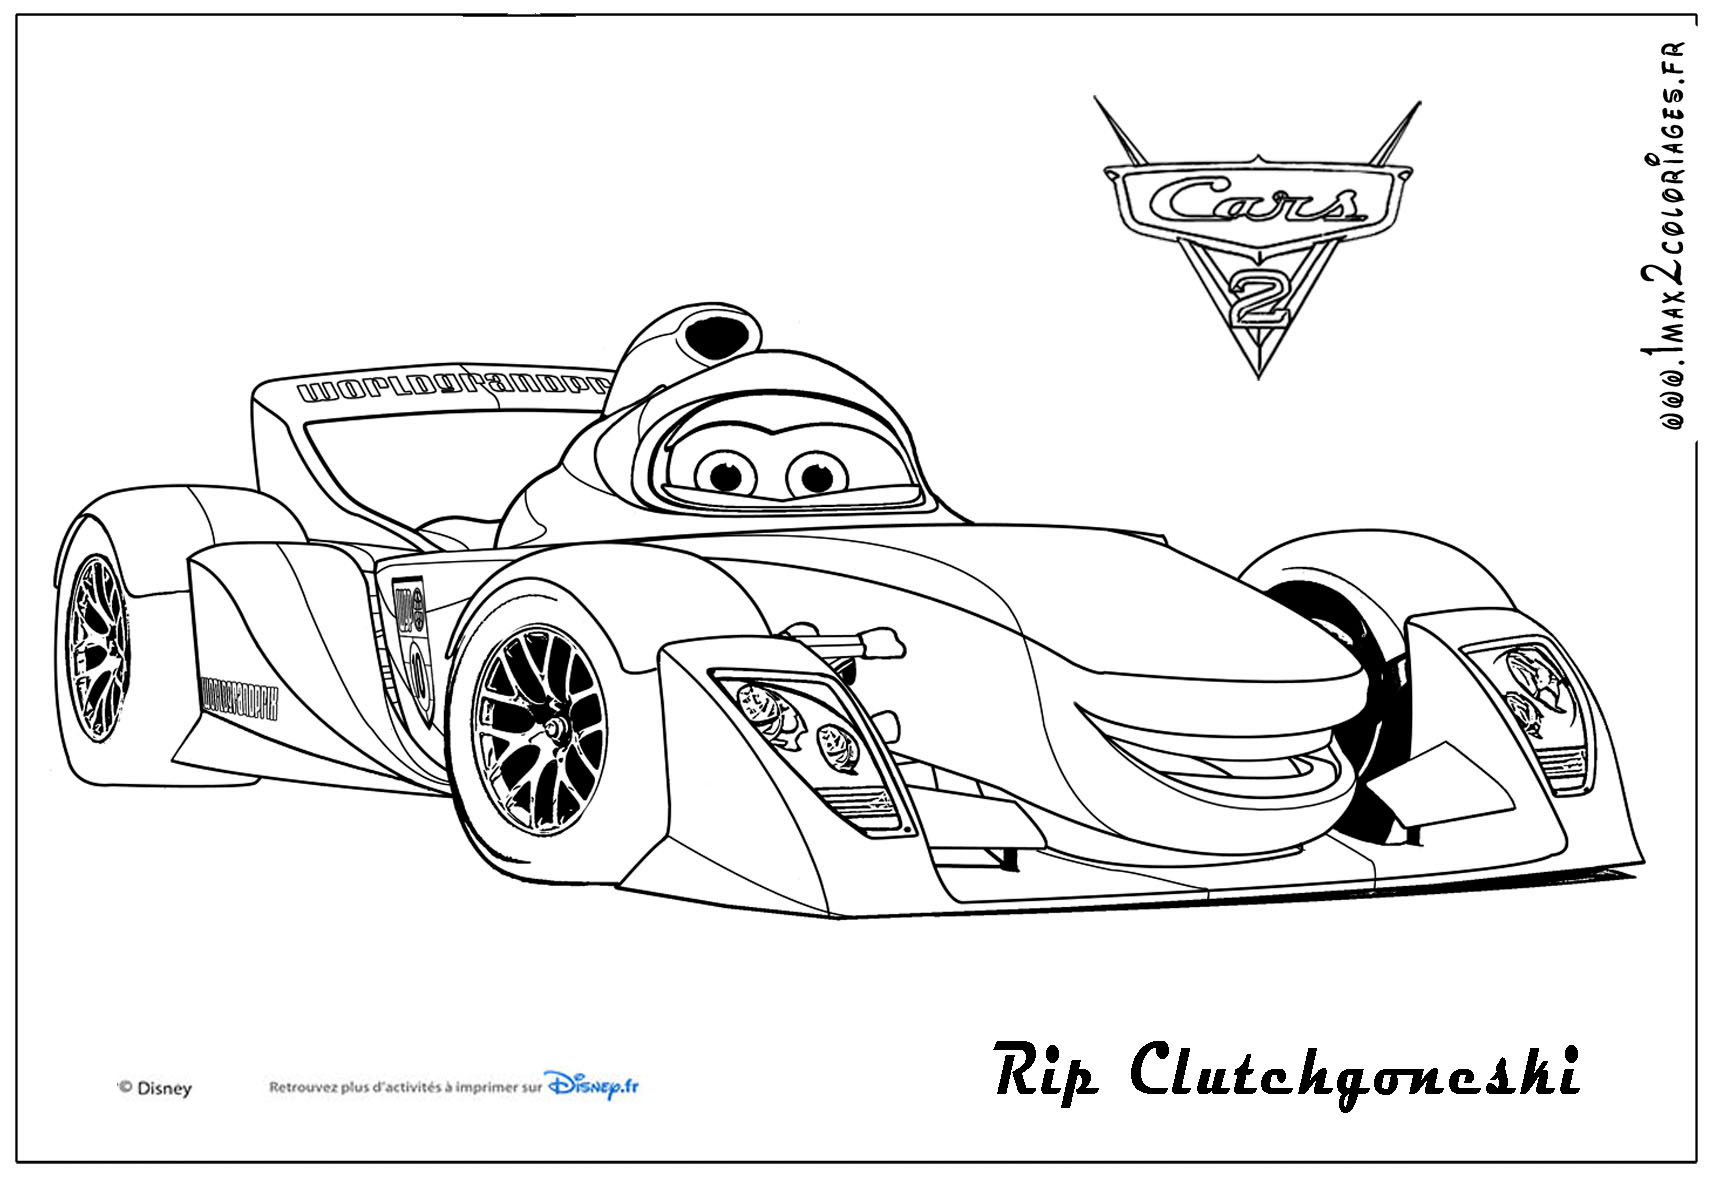 Cars 2 coloring pages - Flo Cars Colouring Pages Page 3 Cars 2 Rip Clutchgoneski Coloriages Les Bagnoles 1713x1181 Cars Download